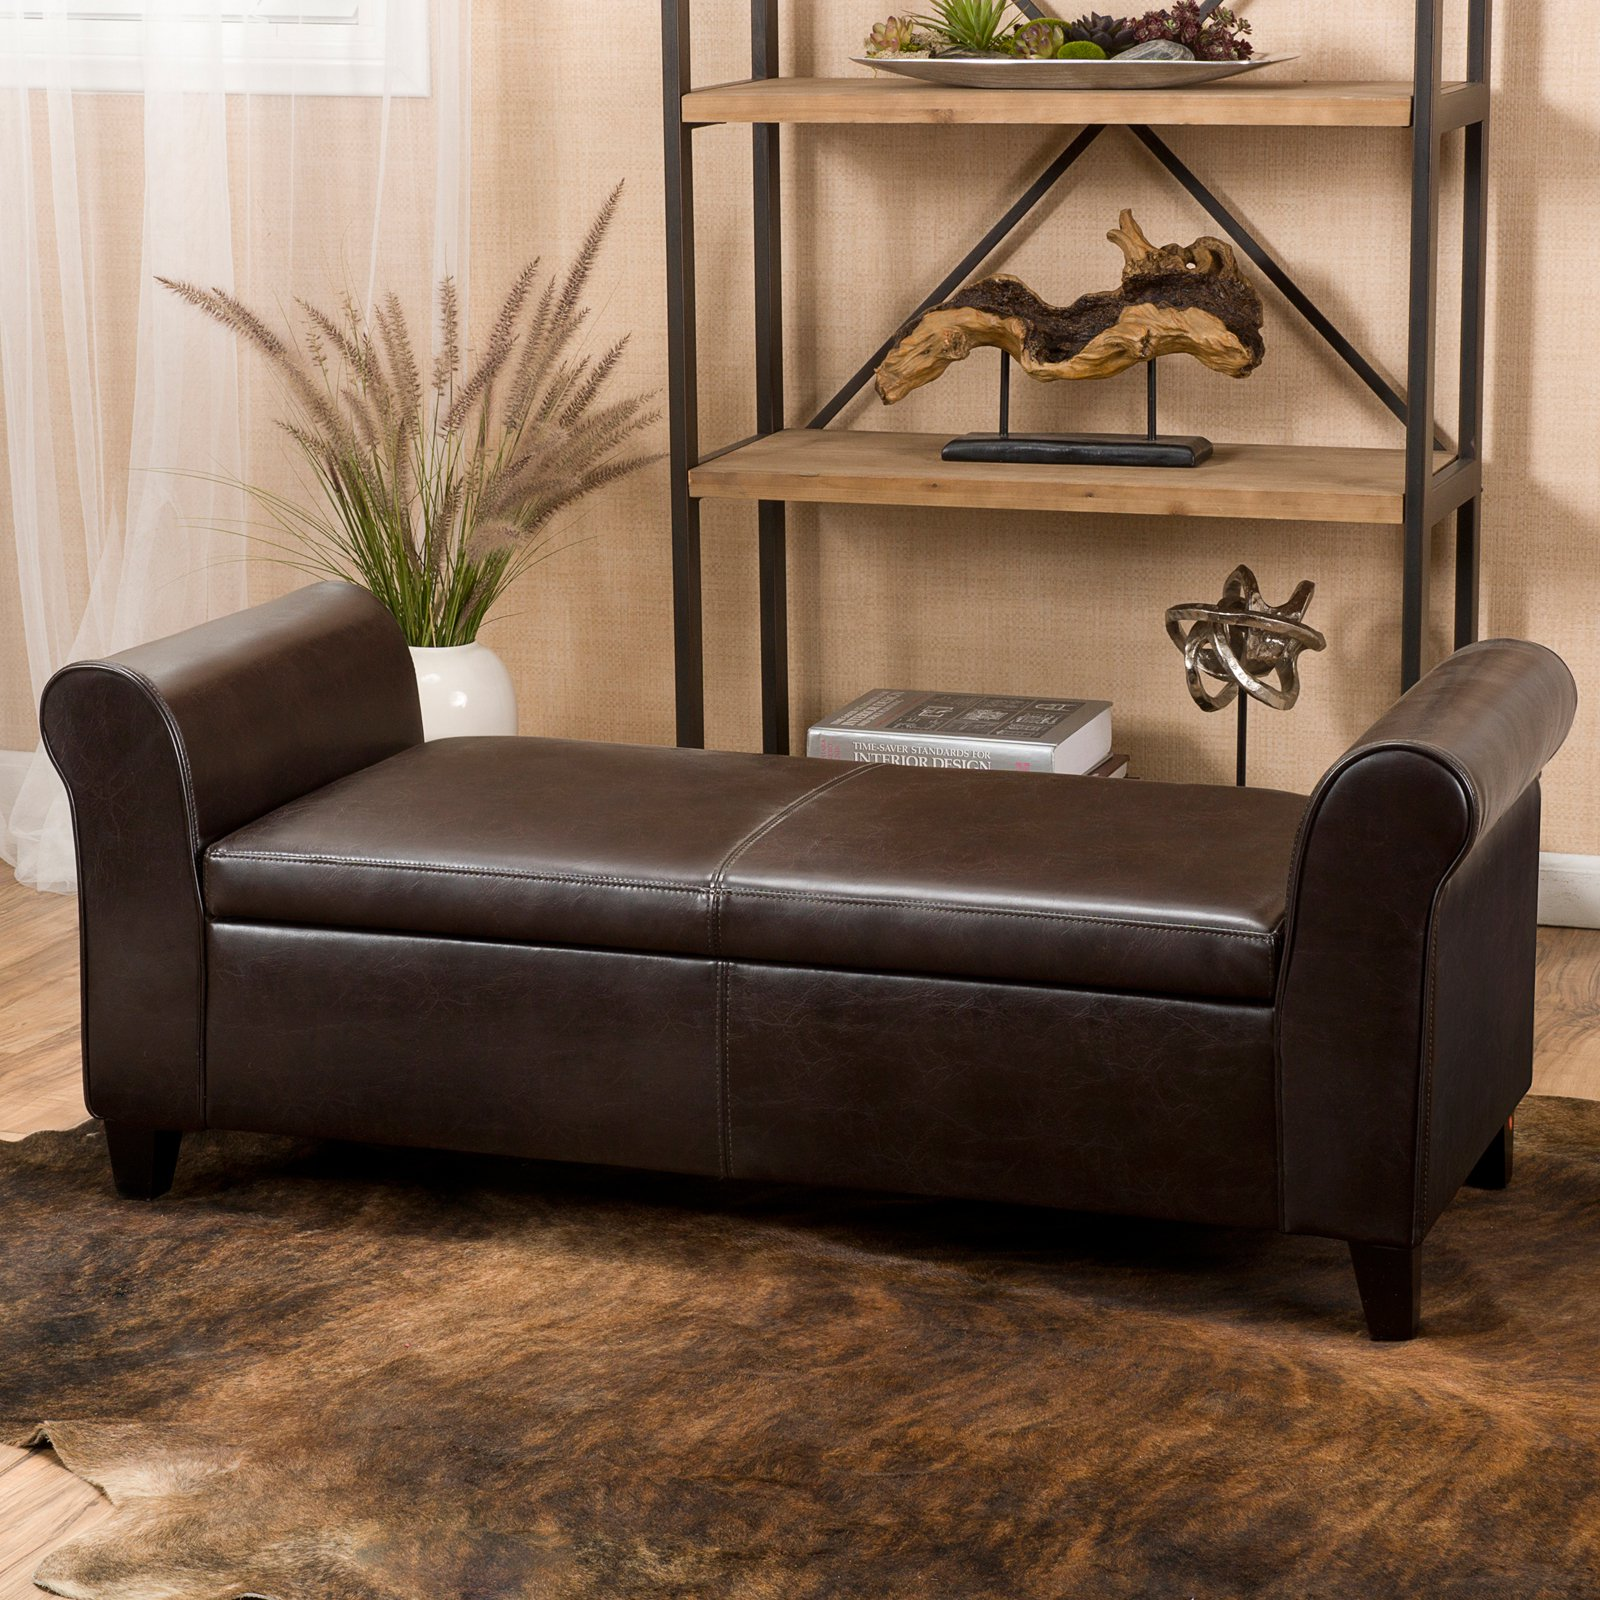 Charmant Martin Faux Leather Bedroom Bench With Storage